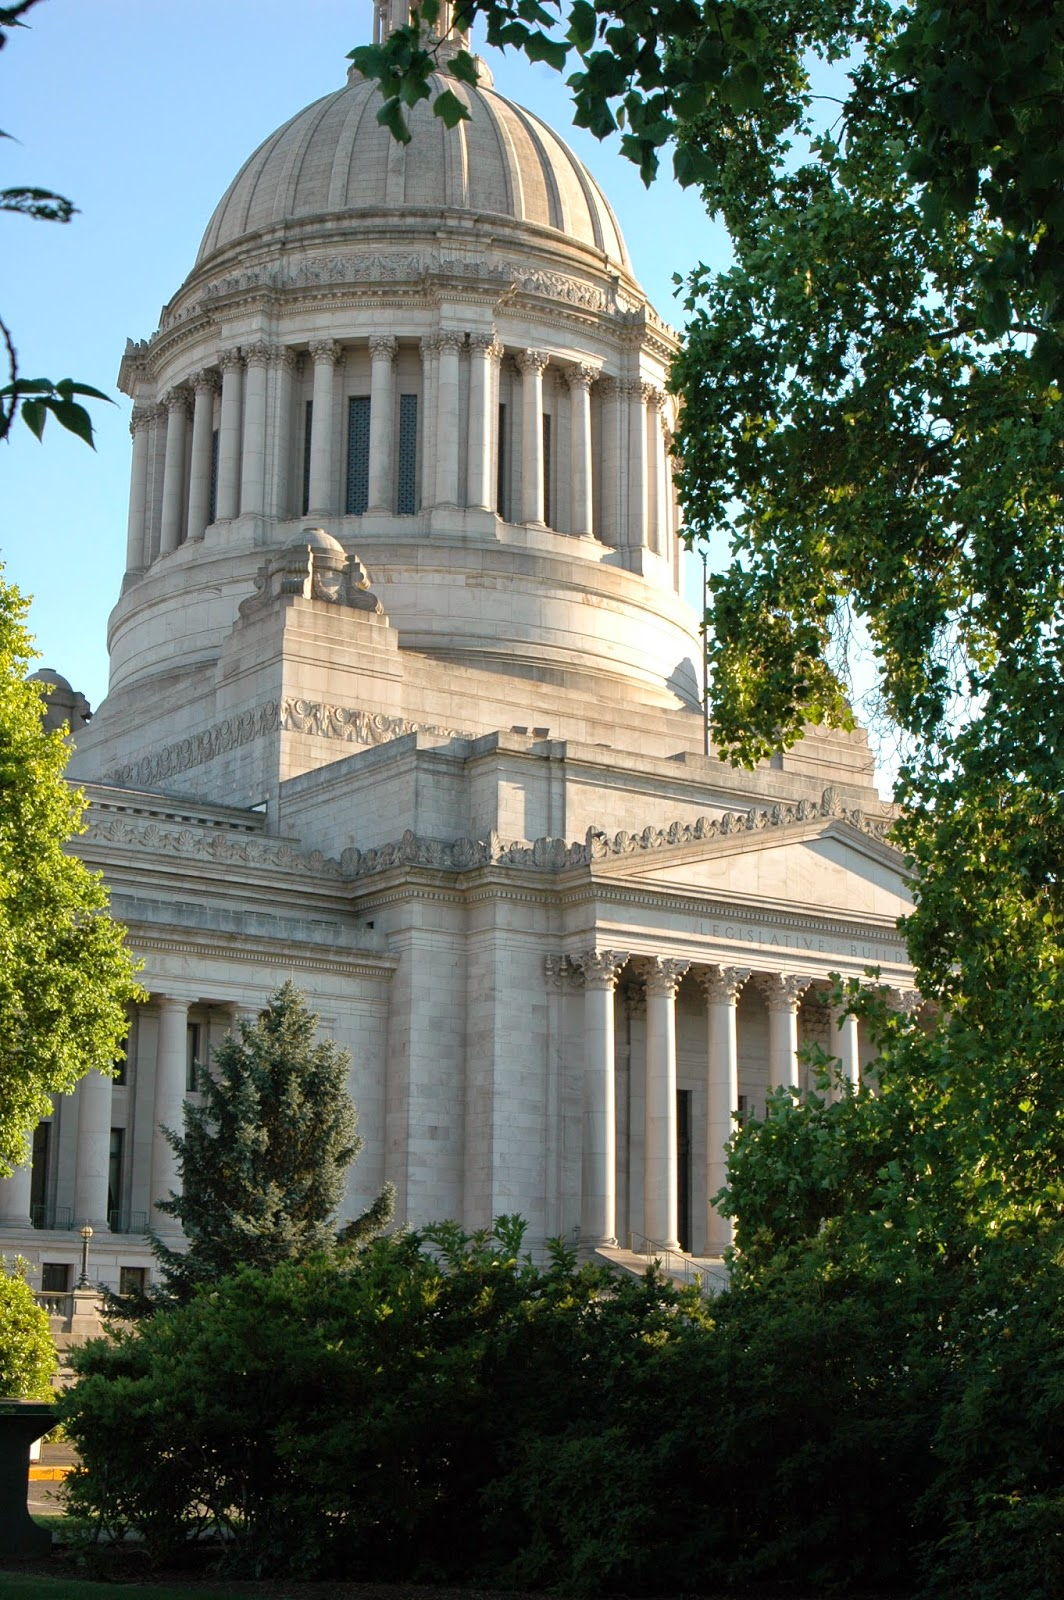 Washington State Capitol Building - Olympia, WA